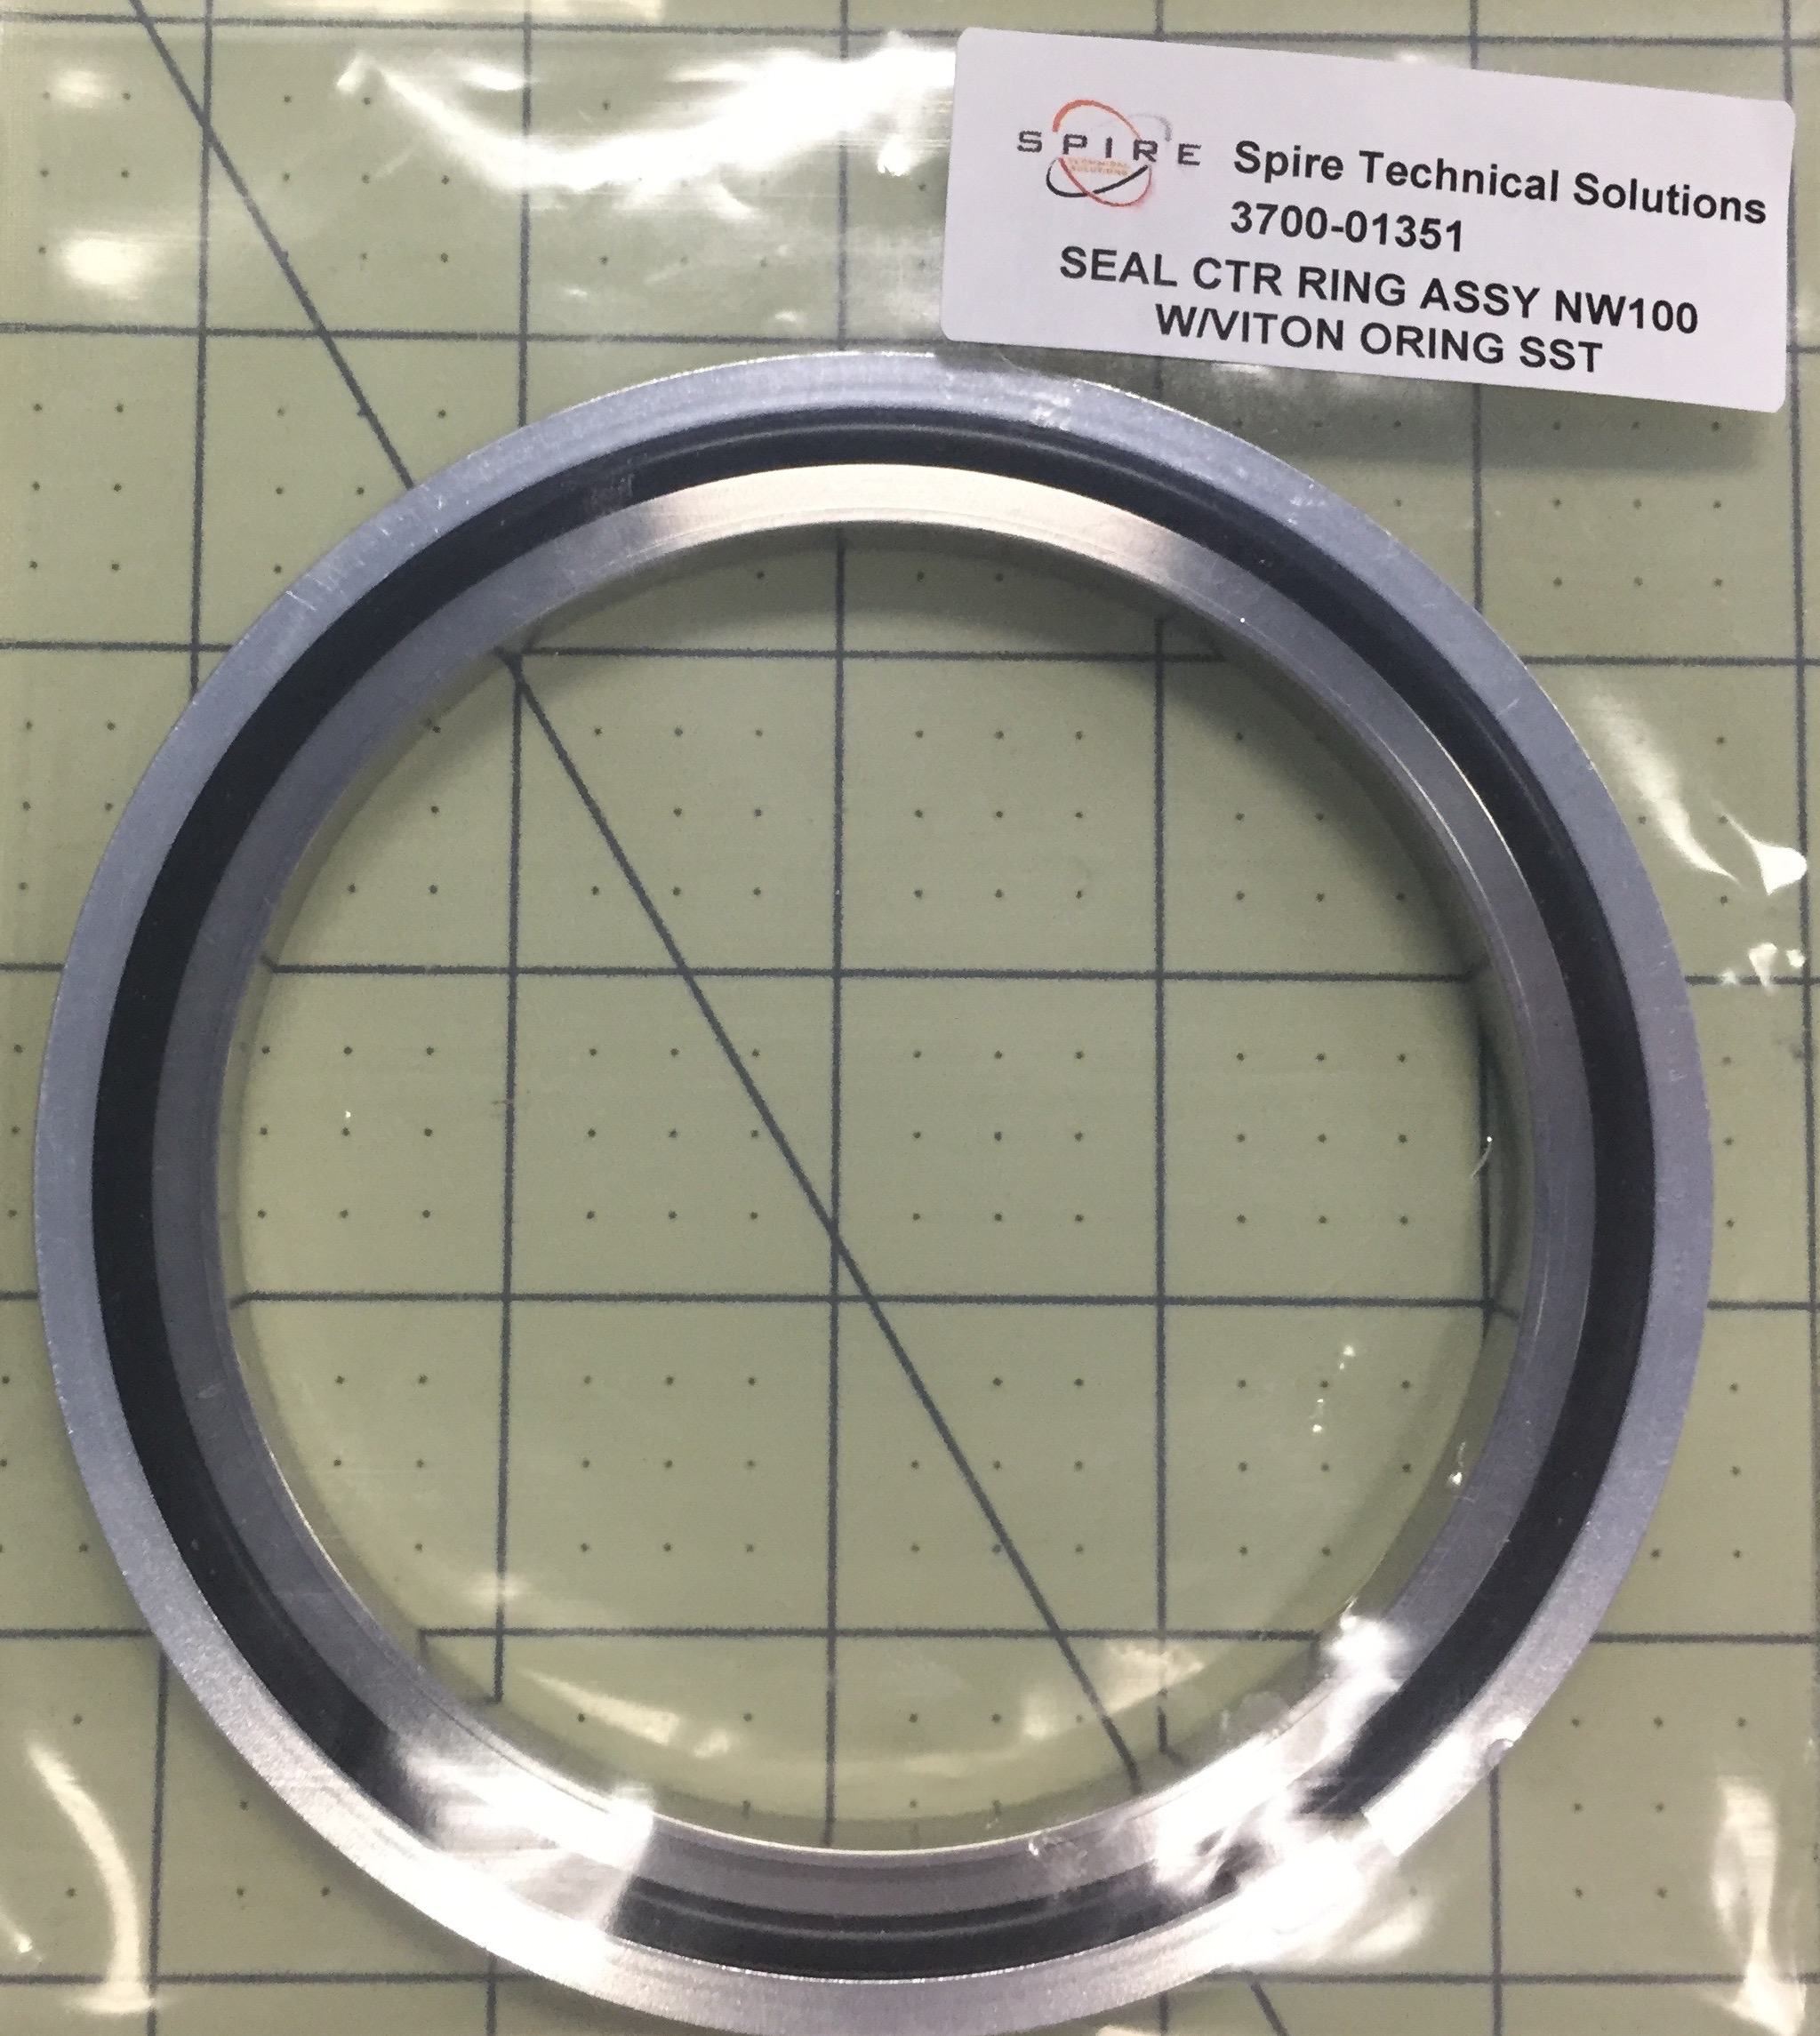 SEAL CTR RING ASSY NW100 W/VITON ORING SST